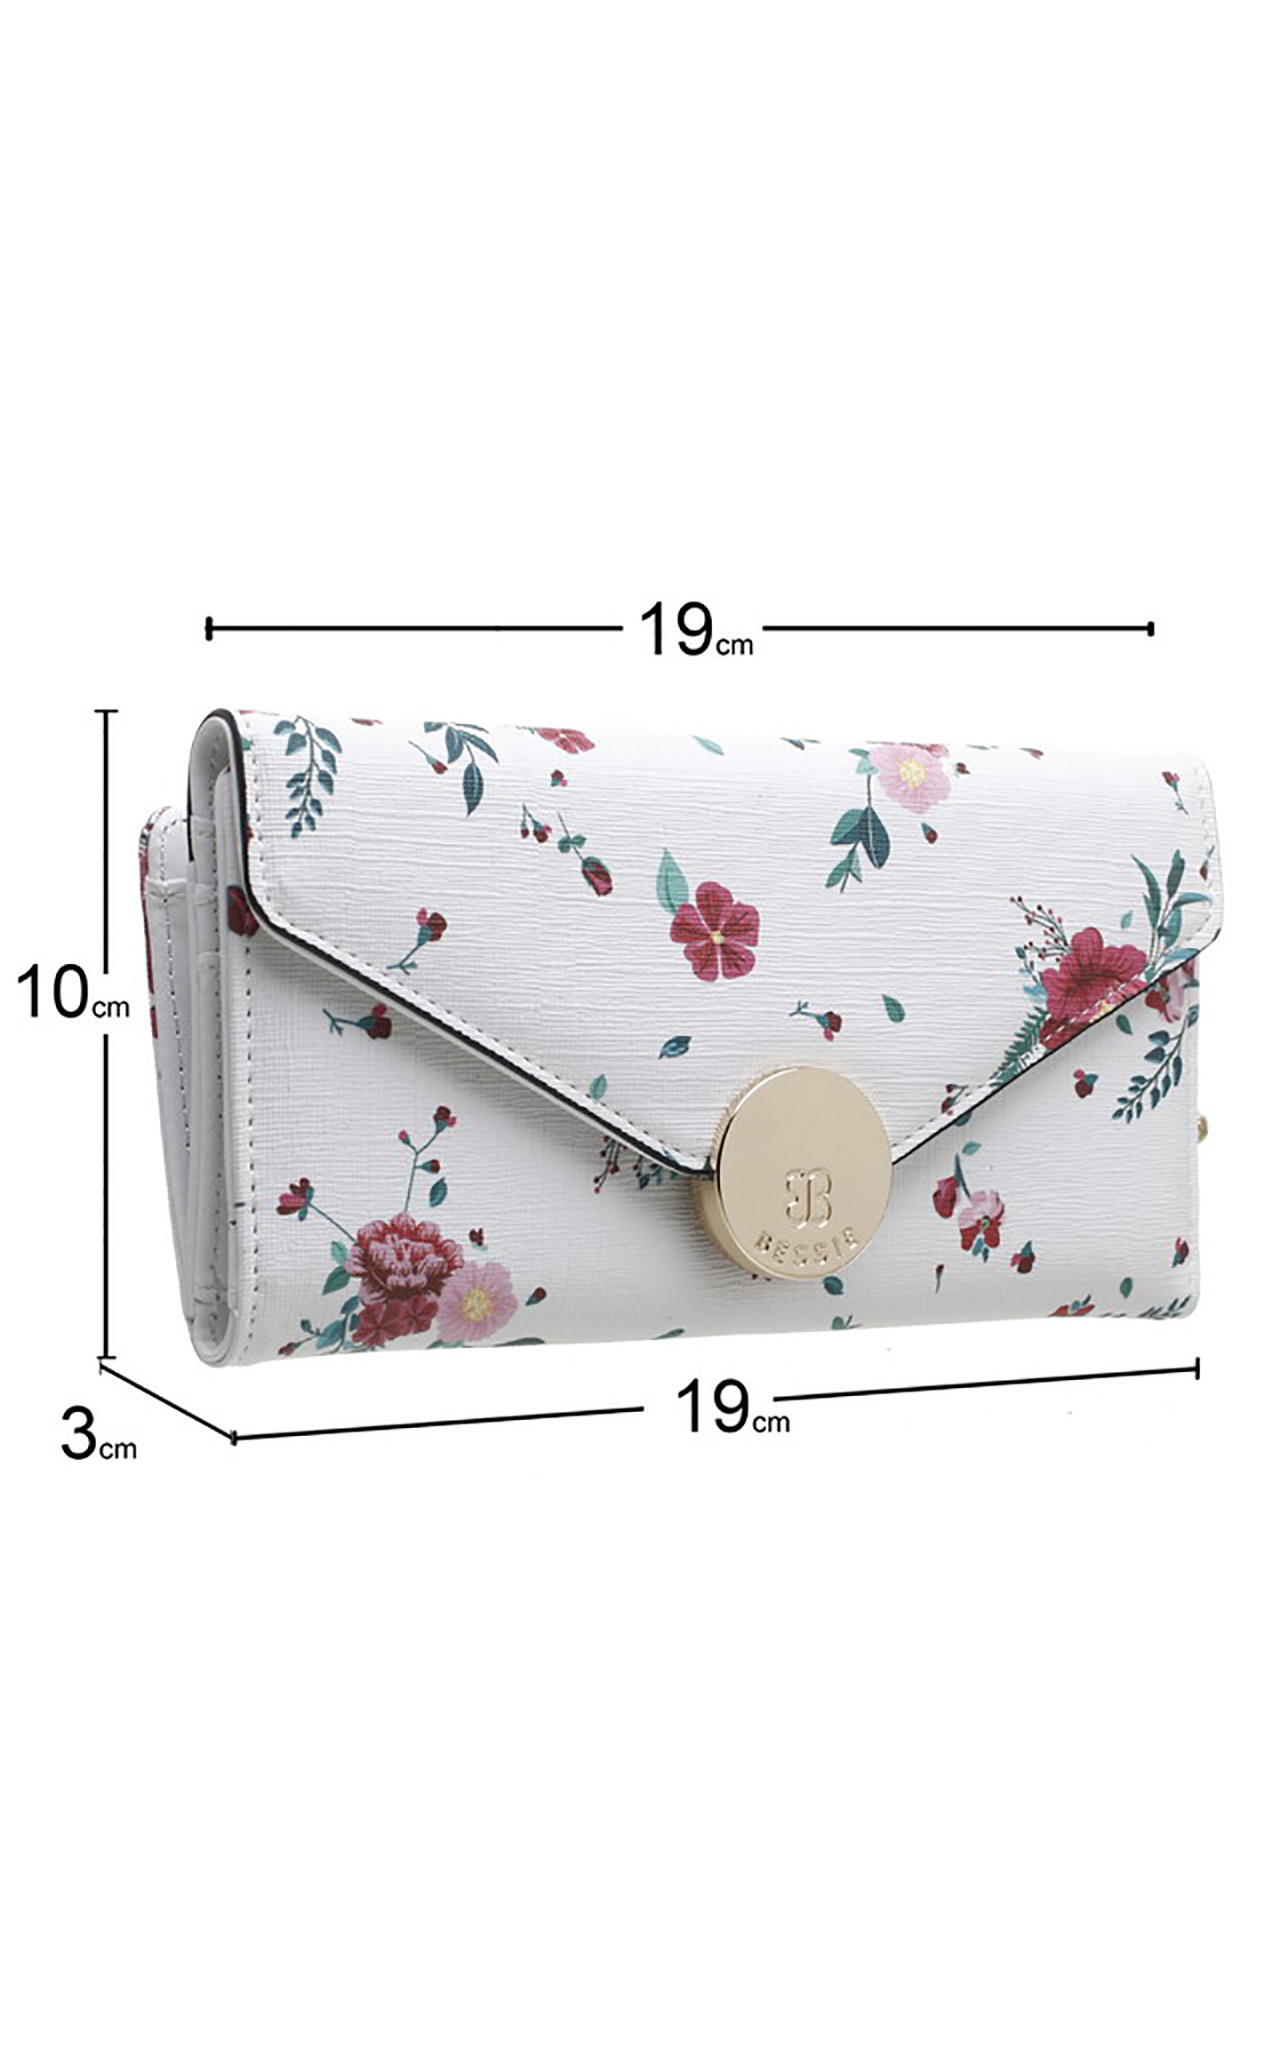 FLORAL PRINT FLAP OVER PURSE